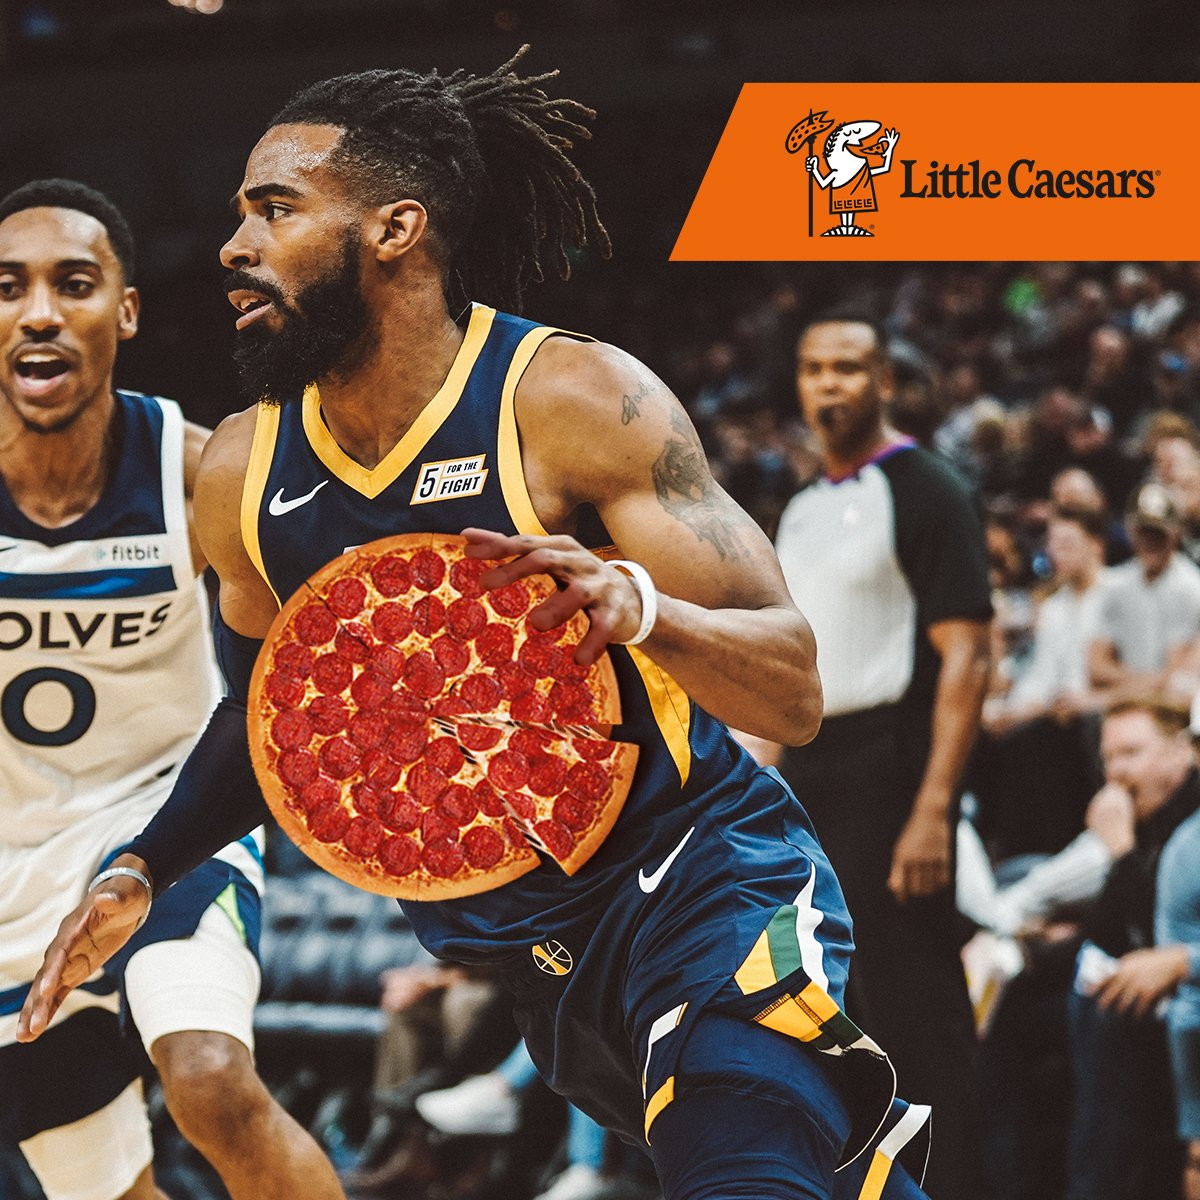 When #JazzWinYouWin!  Use the promo code UTAHJAZZ on the @LittleCaesarsSP mobile app to order one custom round multi-topping pizza the day after a Jazz win (TODAY - 11/21) & get a free Large EXTRAMOSTBESTEST Pepperoni Pizza.  🍕: http://bit.ly/2NuLQFO